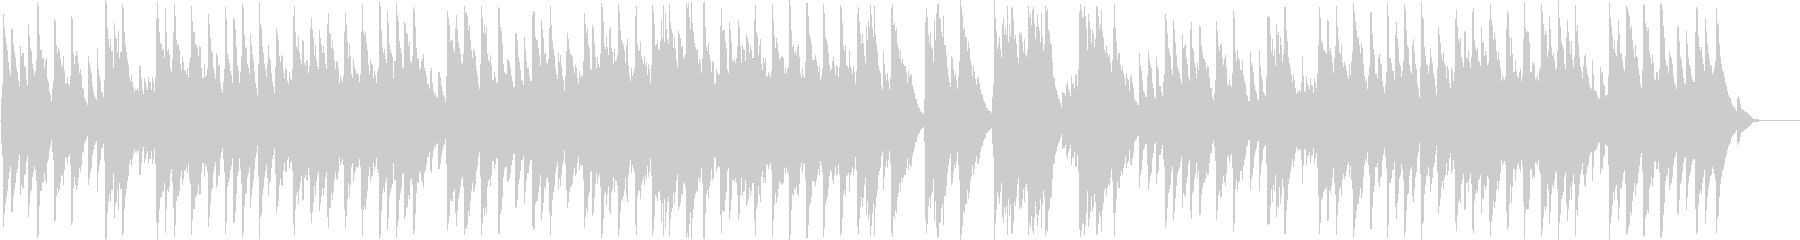 Andante Cantabile (music box)'s unreproduced waveform